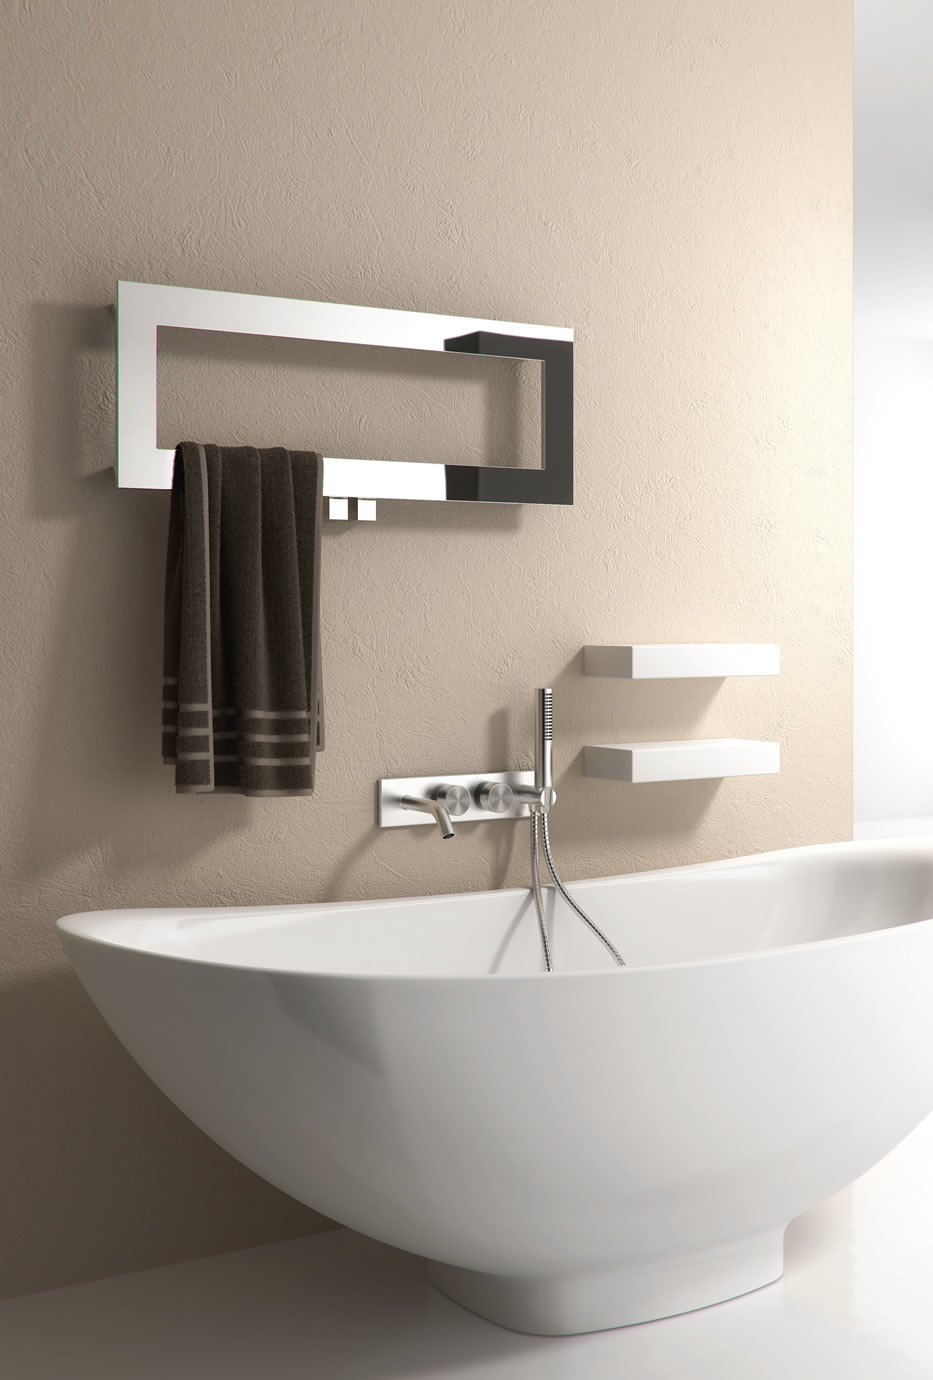 BIVANO 800 X 300 STAINLESS STEEL TOWEL RADIATOR